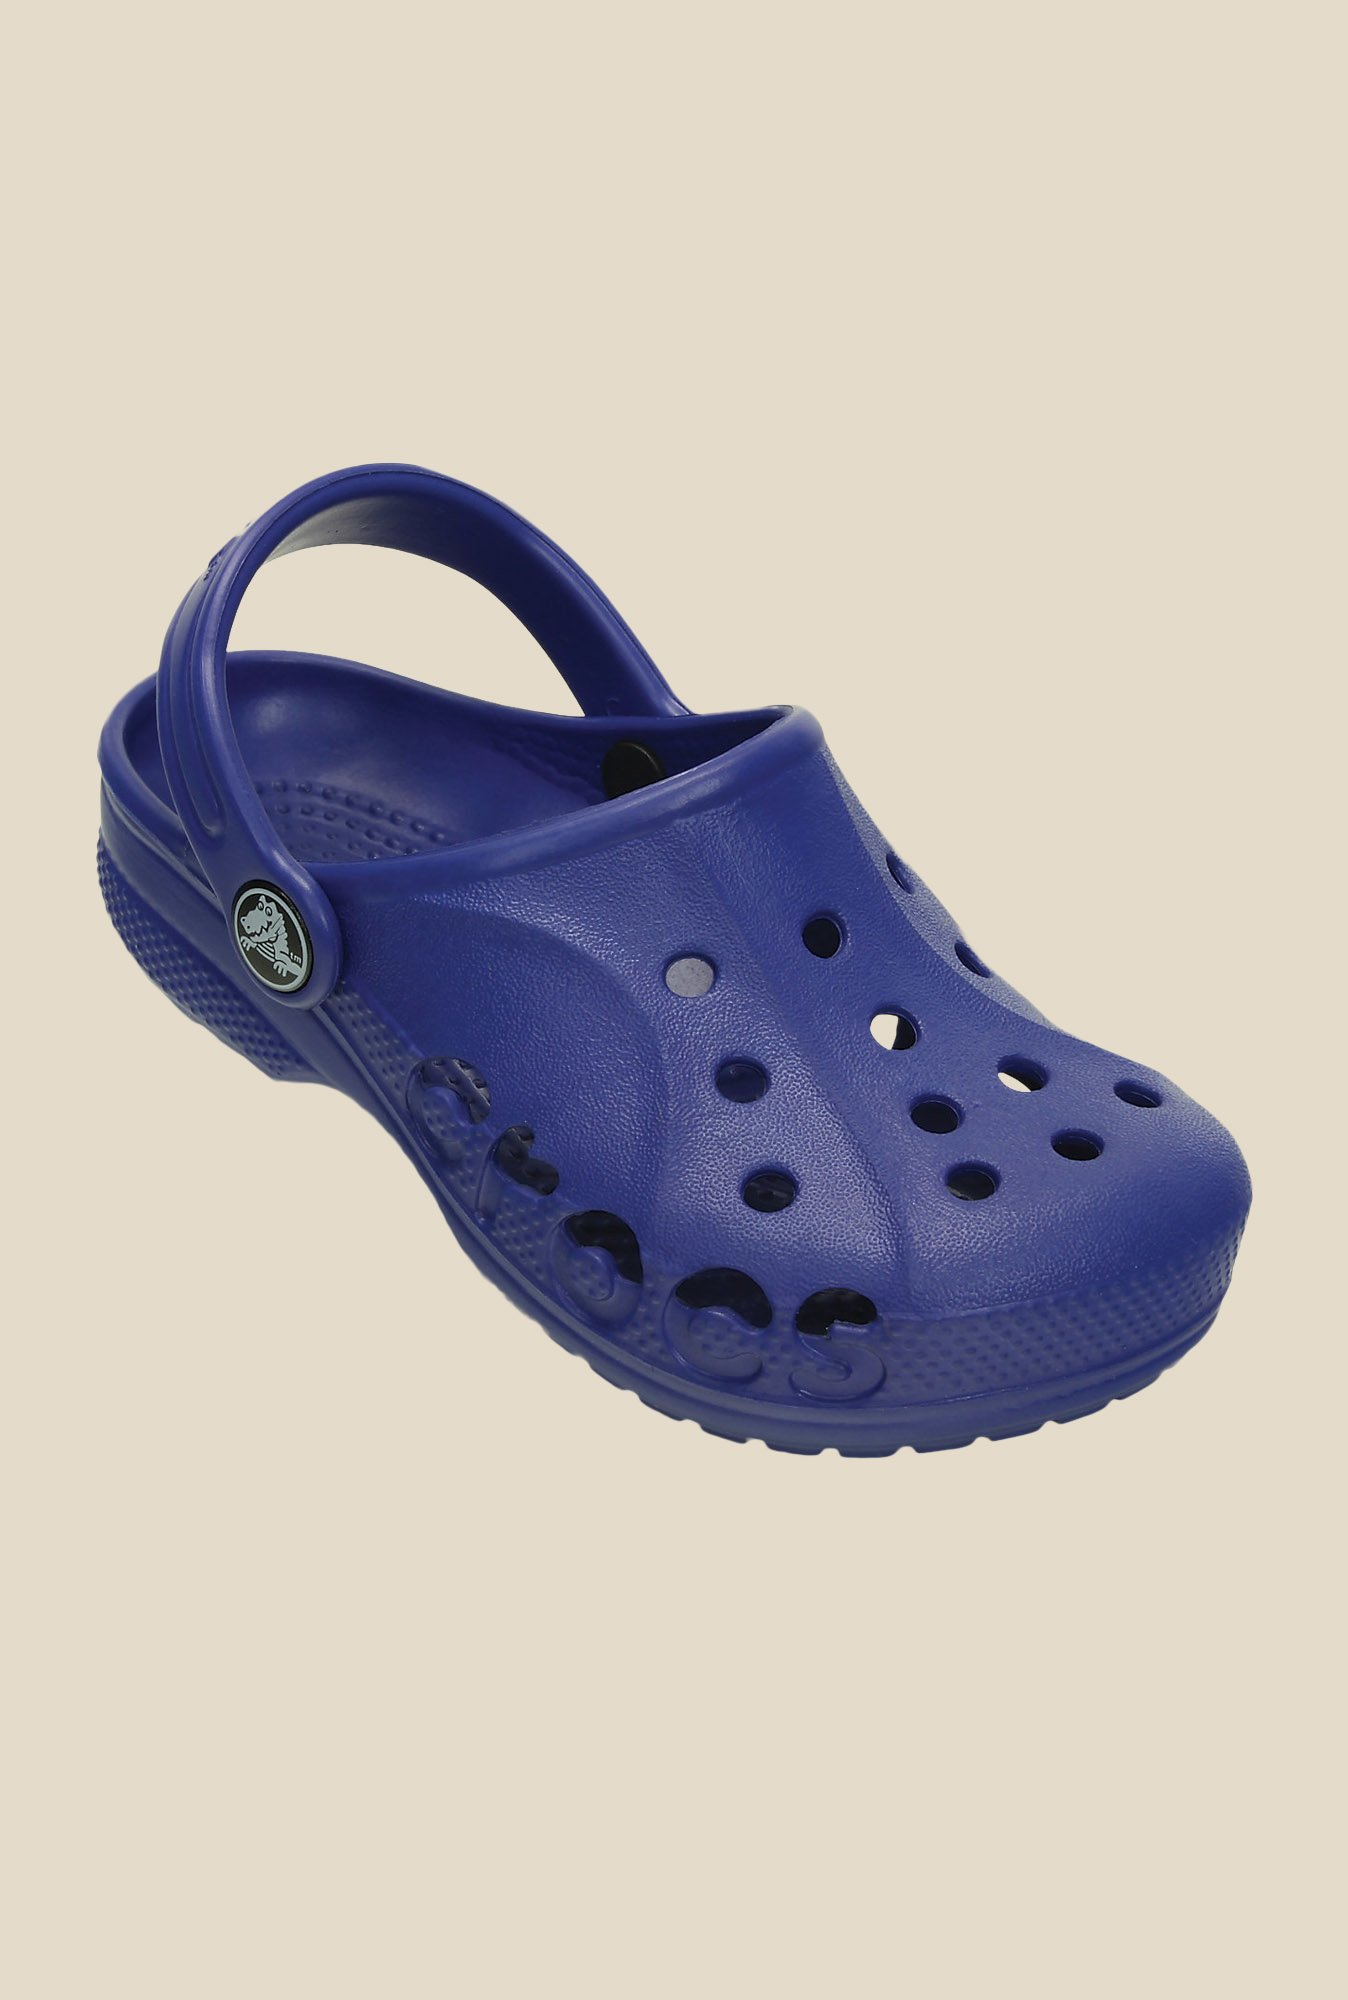 Crocs Baya Cerulean Blue Clogs